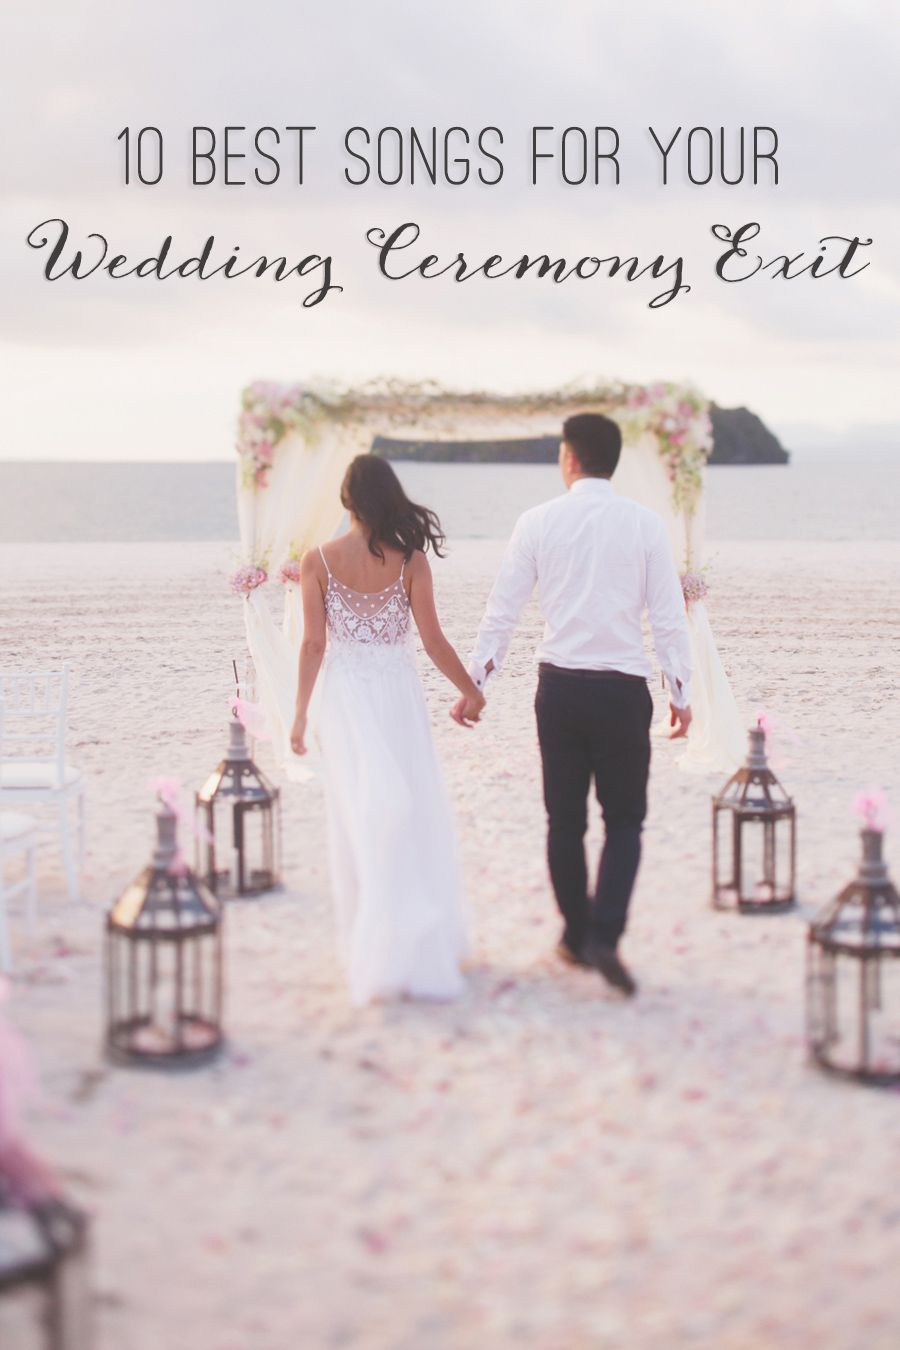 10 Best Songs For Your Wedding Ceremony Exit